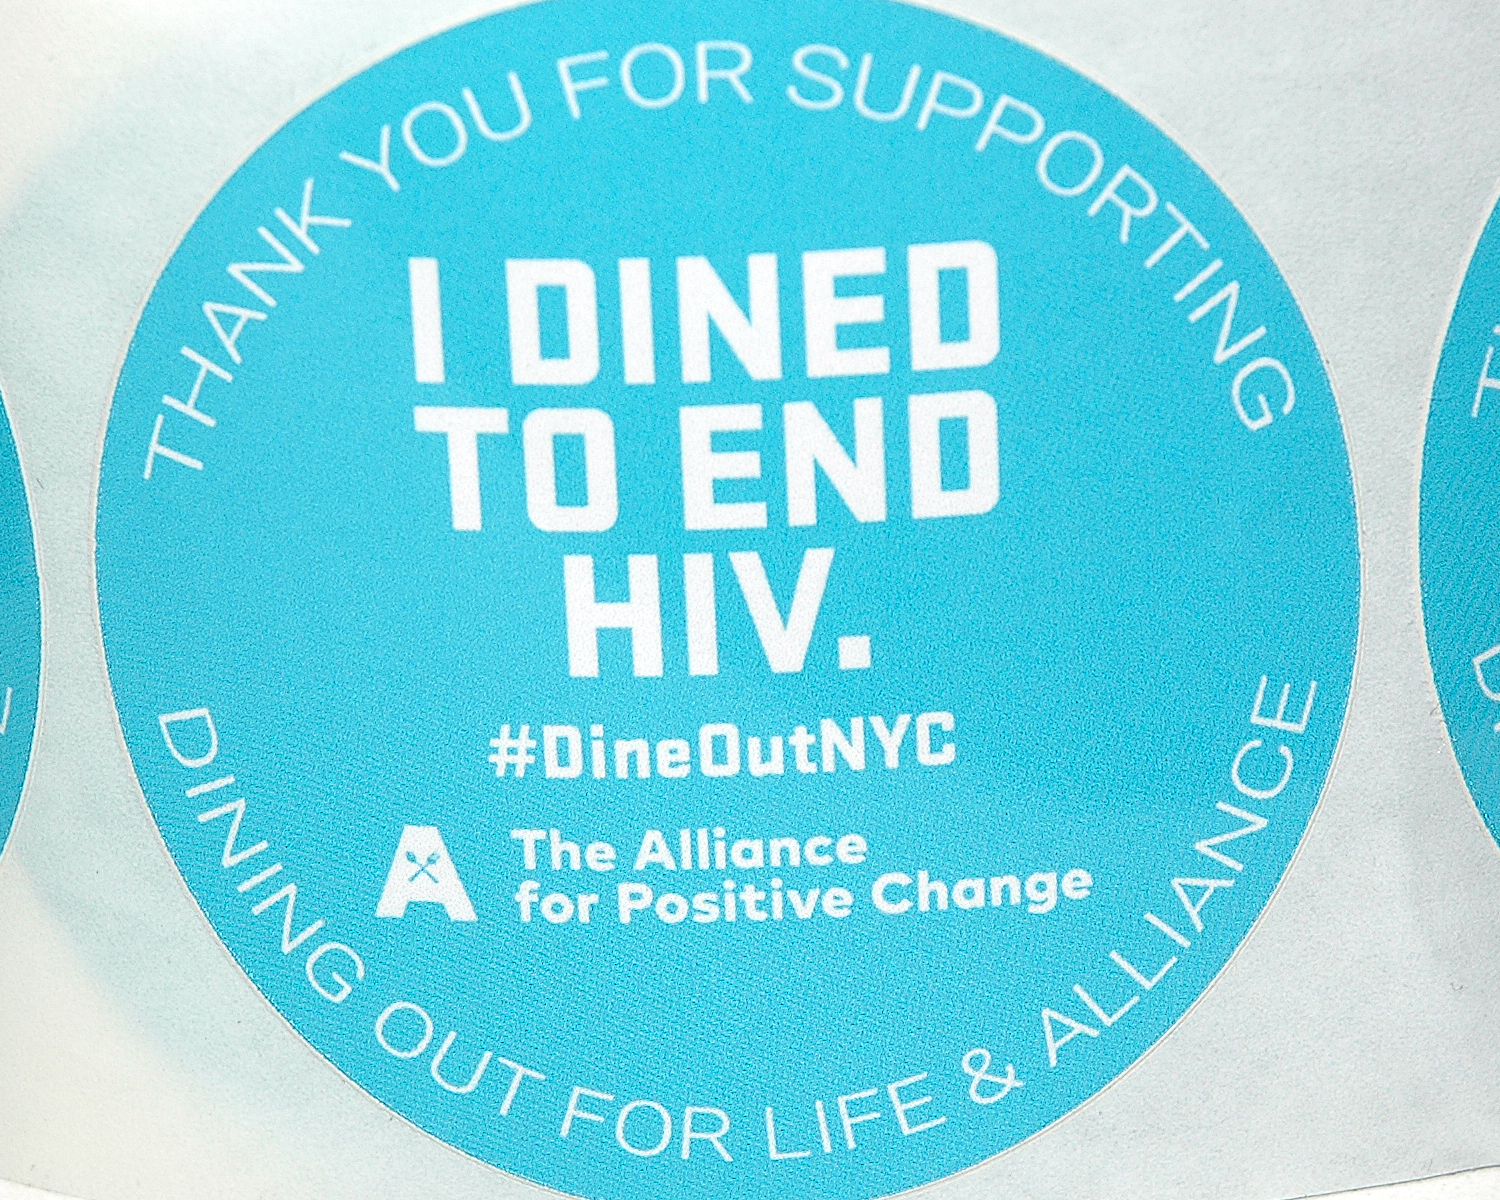 Thank You For Supporting Dining Out For Life and Alliance